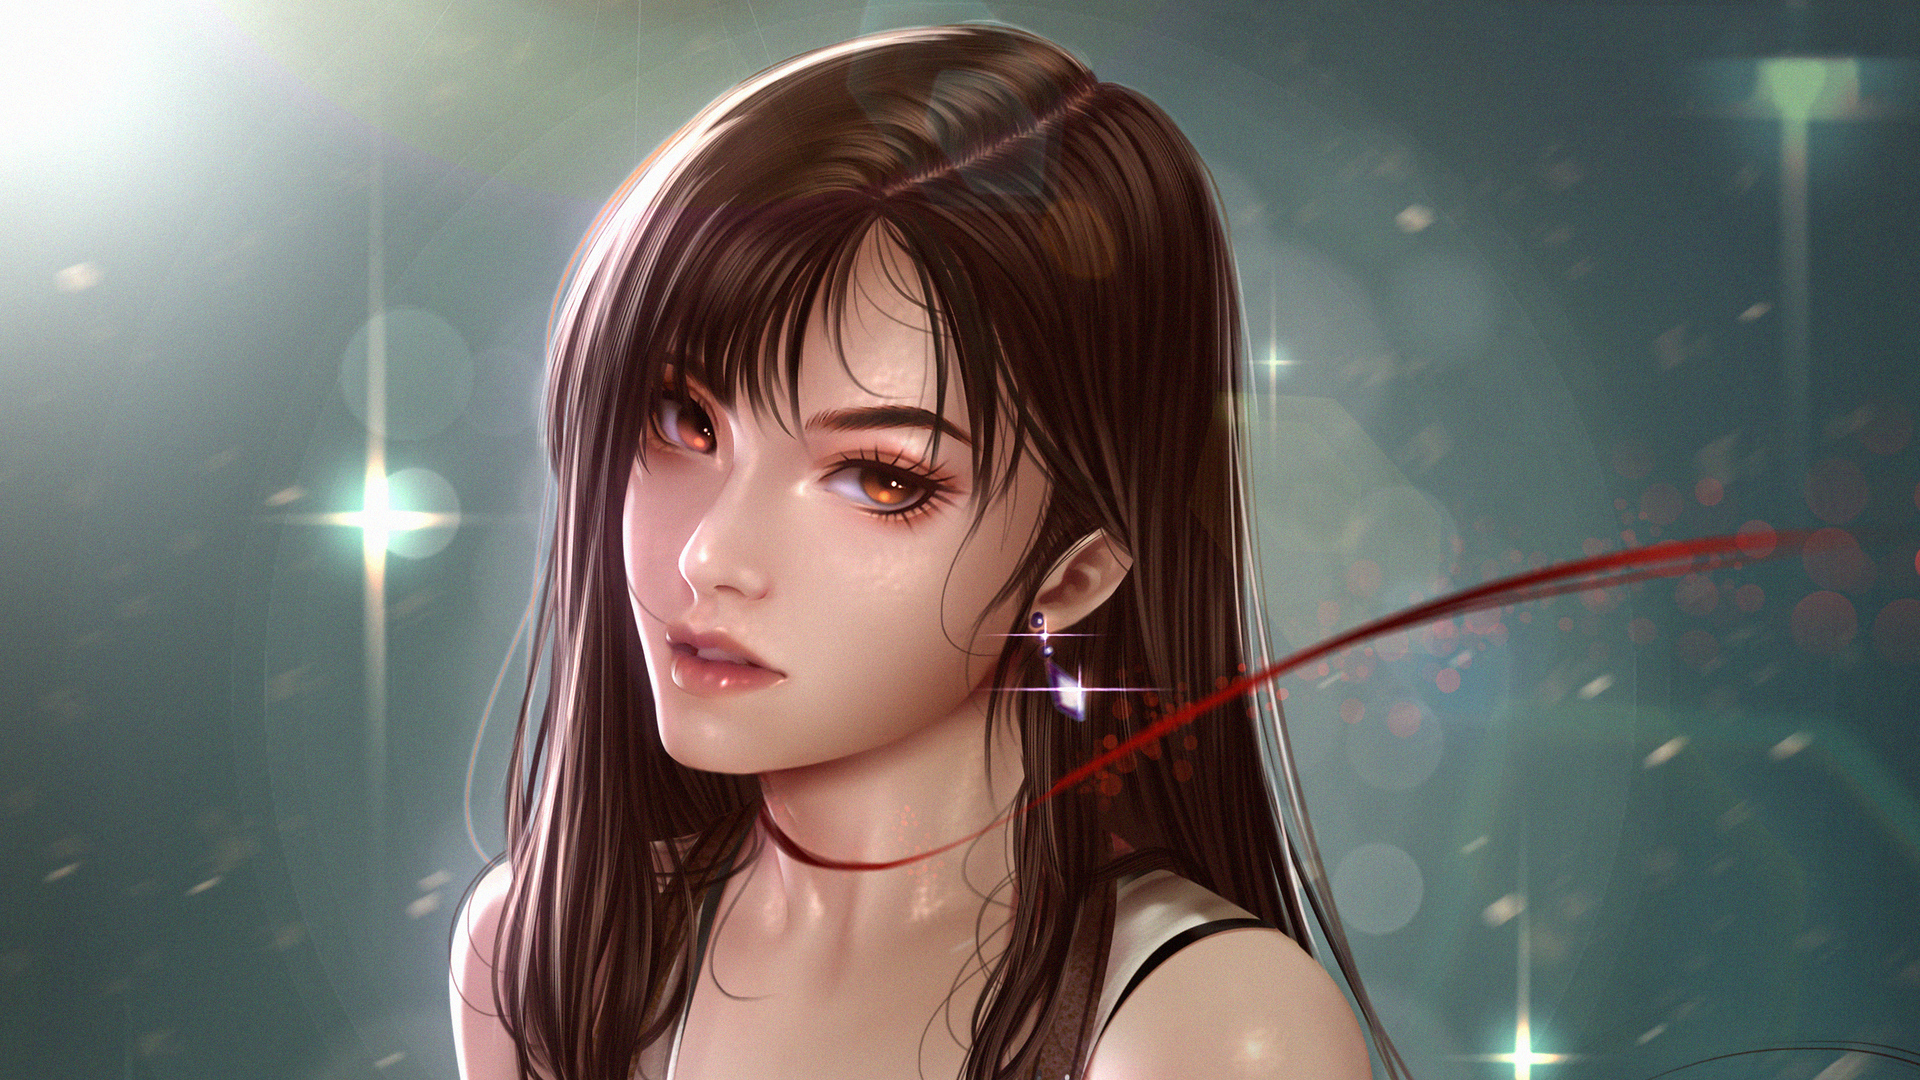 1920x1080 Tifa Lockhart Finalfantasy Laptop Full Hd 1080p Hd